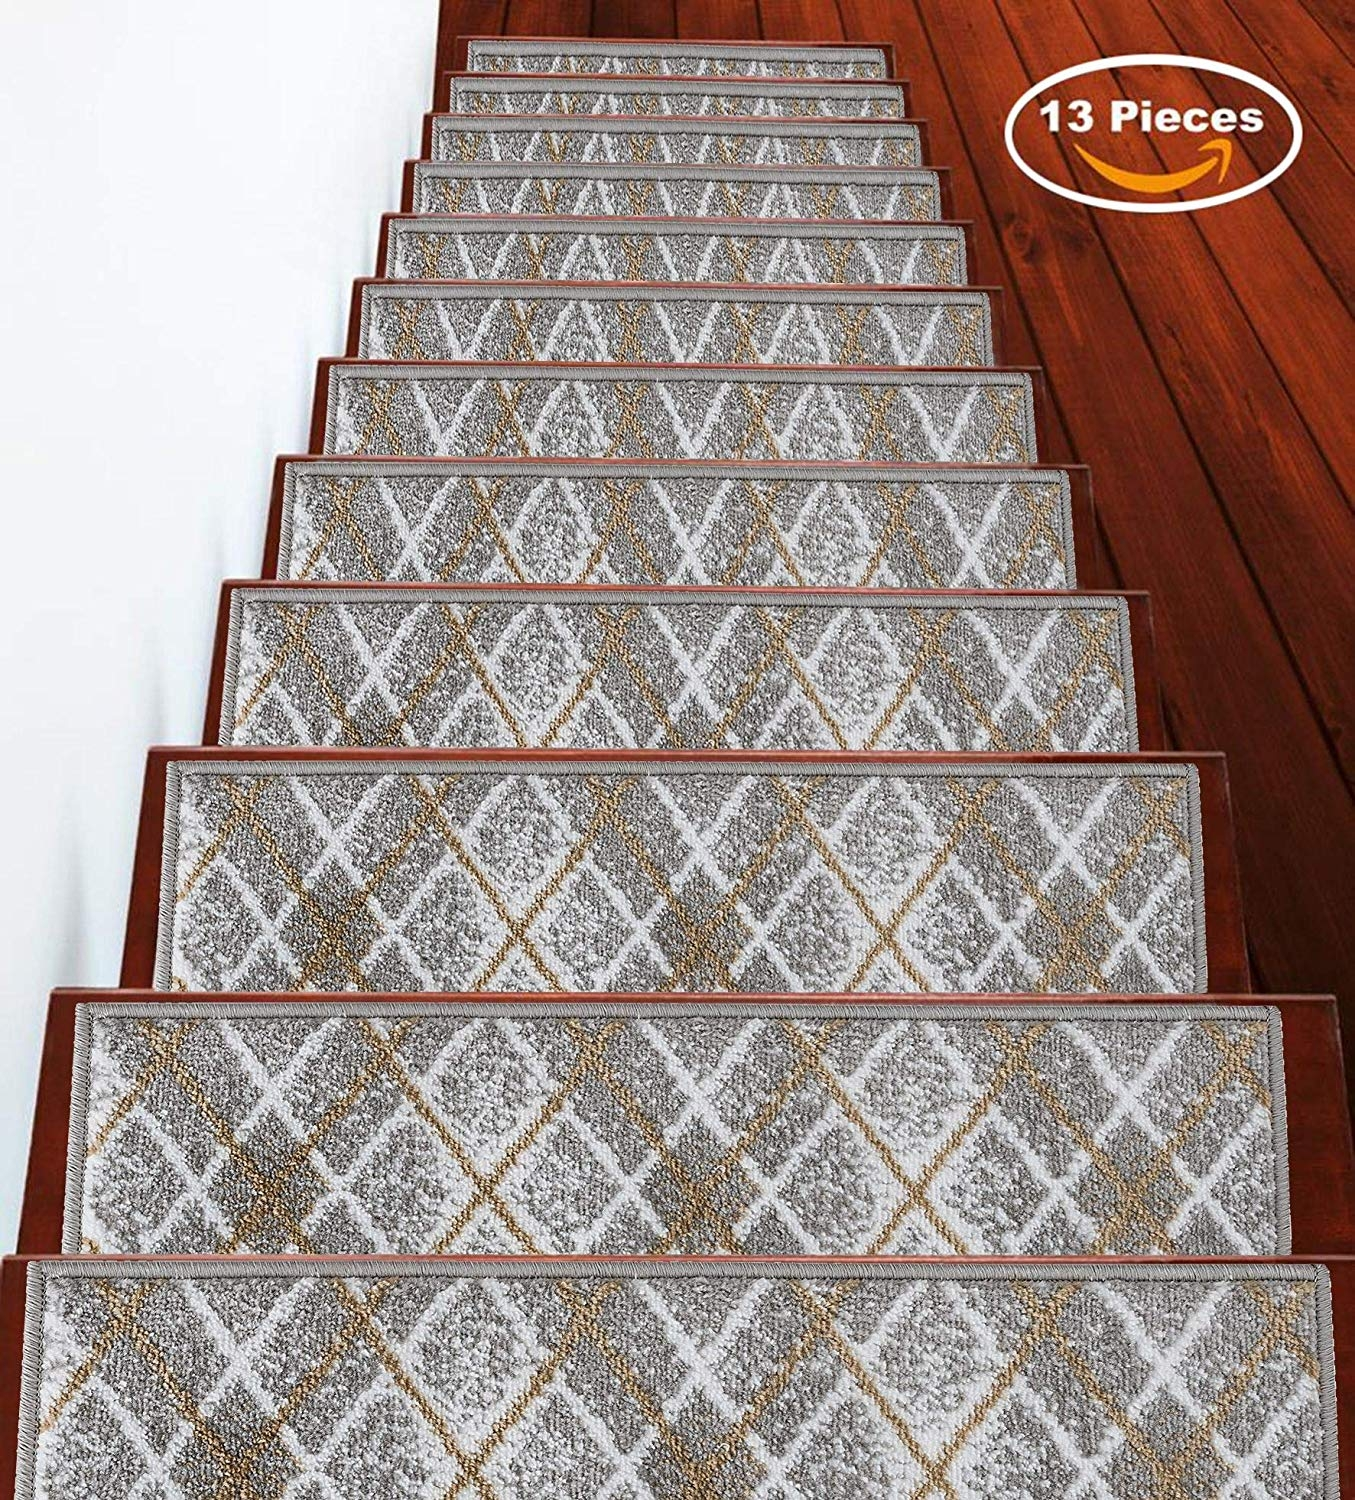 Sussexhome Stairs Slide Carpet Stair Tread Non Slip Stair Treads | Decorative Carpet For Stairs | Rectangular Cord Treads | Gingham | Brown | Animal Print | Stair Runner Matching Landing